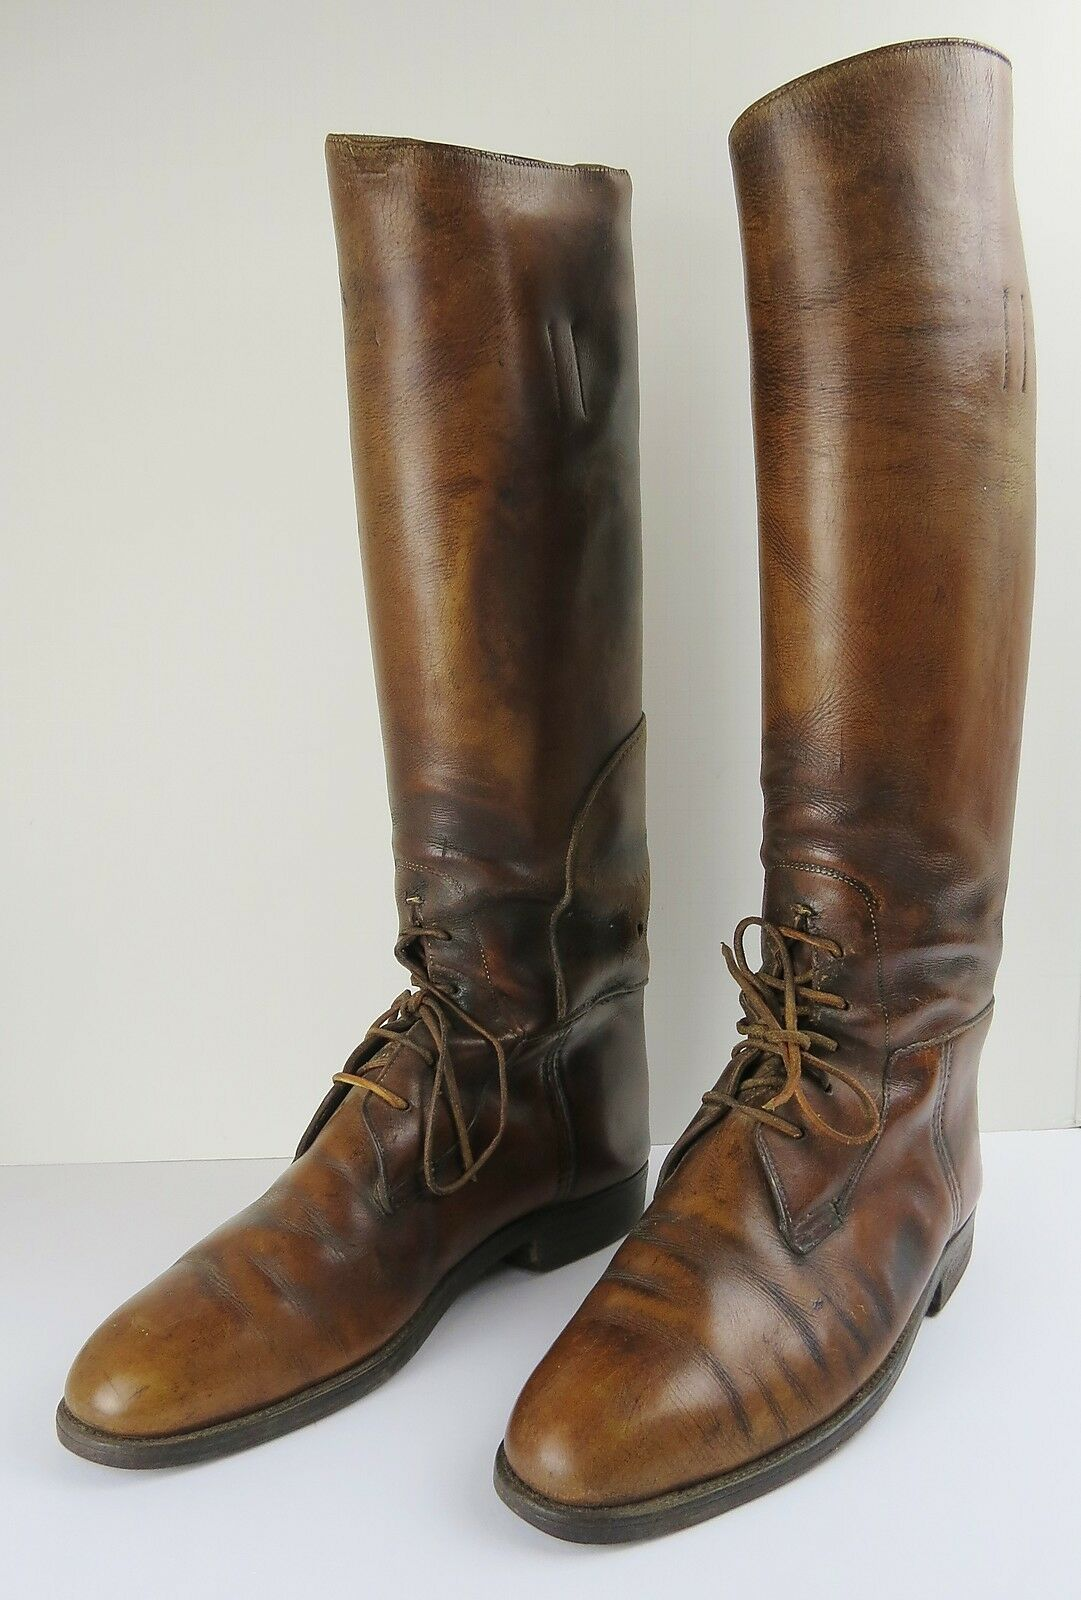 VTG Casa Fagliano Brown Leather Equestrian Polo Riding Mens Boots & shoe forms